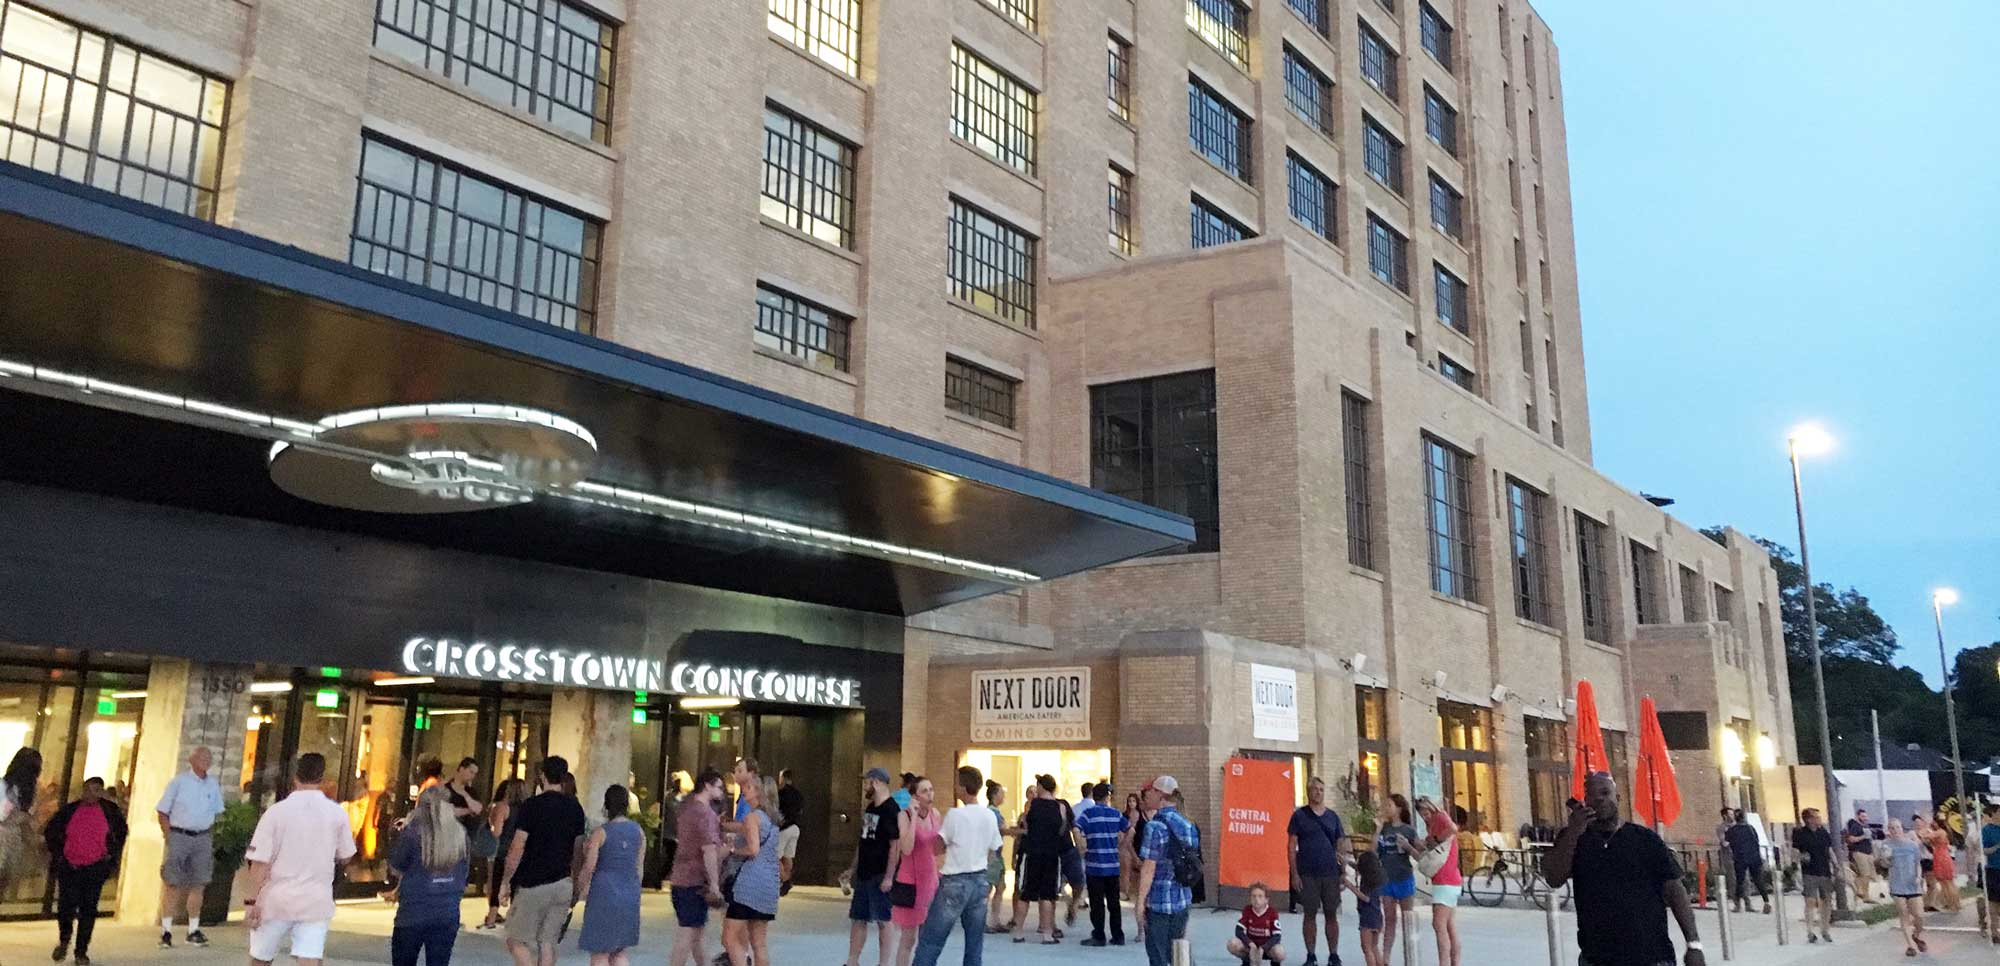 Crosstown-Concourse-Grand-Opening-exterior-side-ppl-entrance-9.jpg